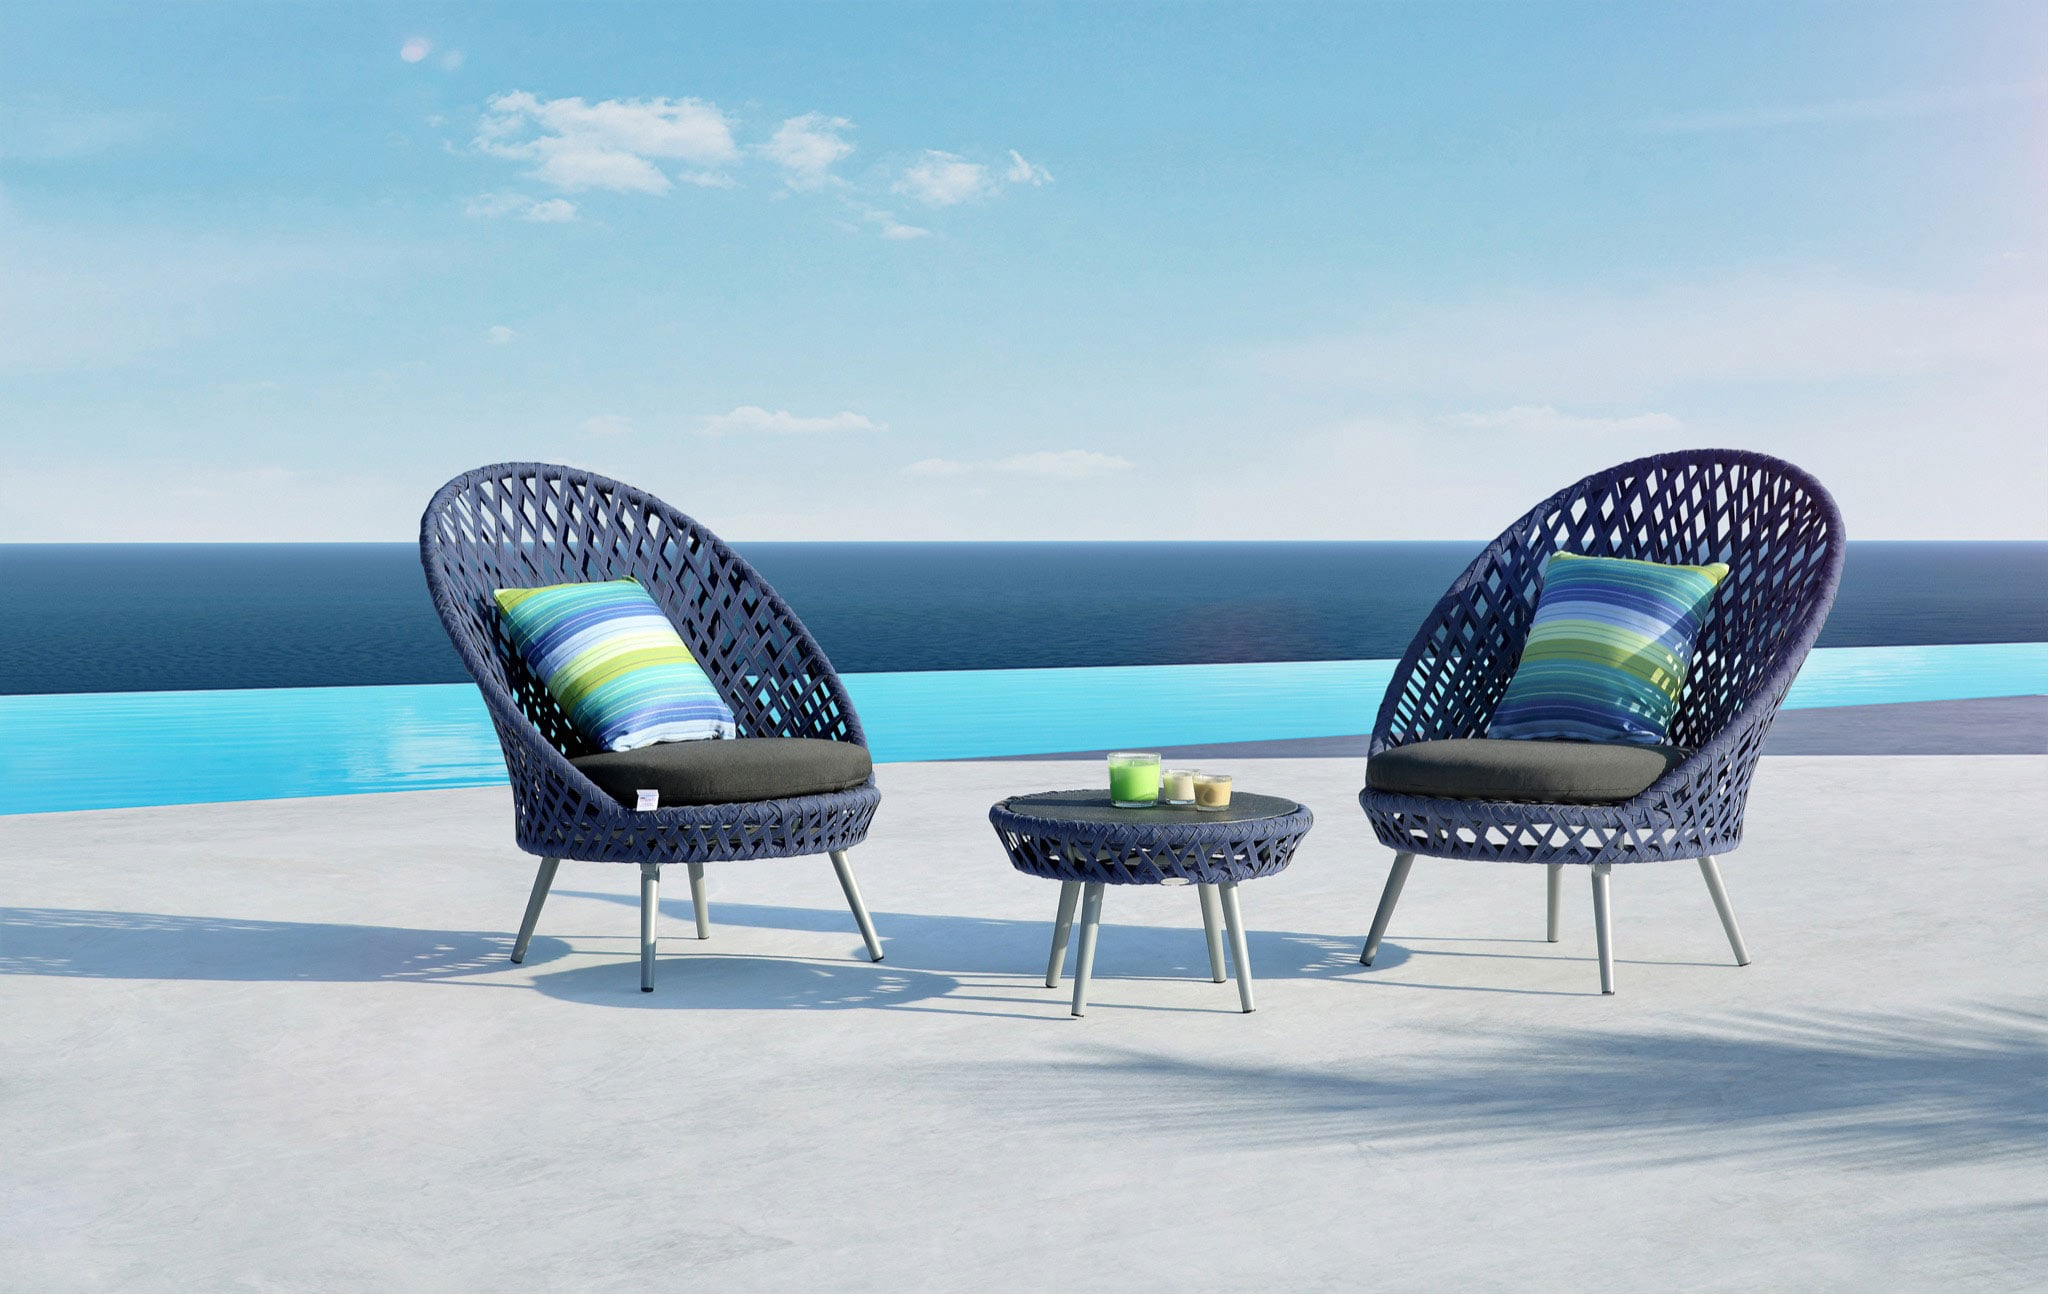 ... Siena Outdoor Furniture Blue; The Outdoor Furniture Specialists  Campbelltown Summer Inspirations Catalogue ... Part 22